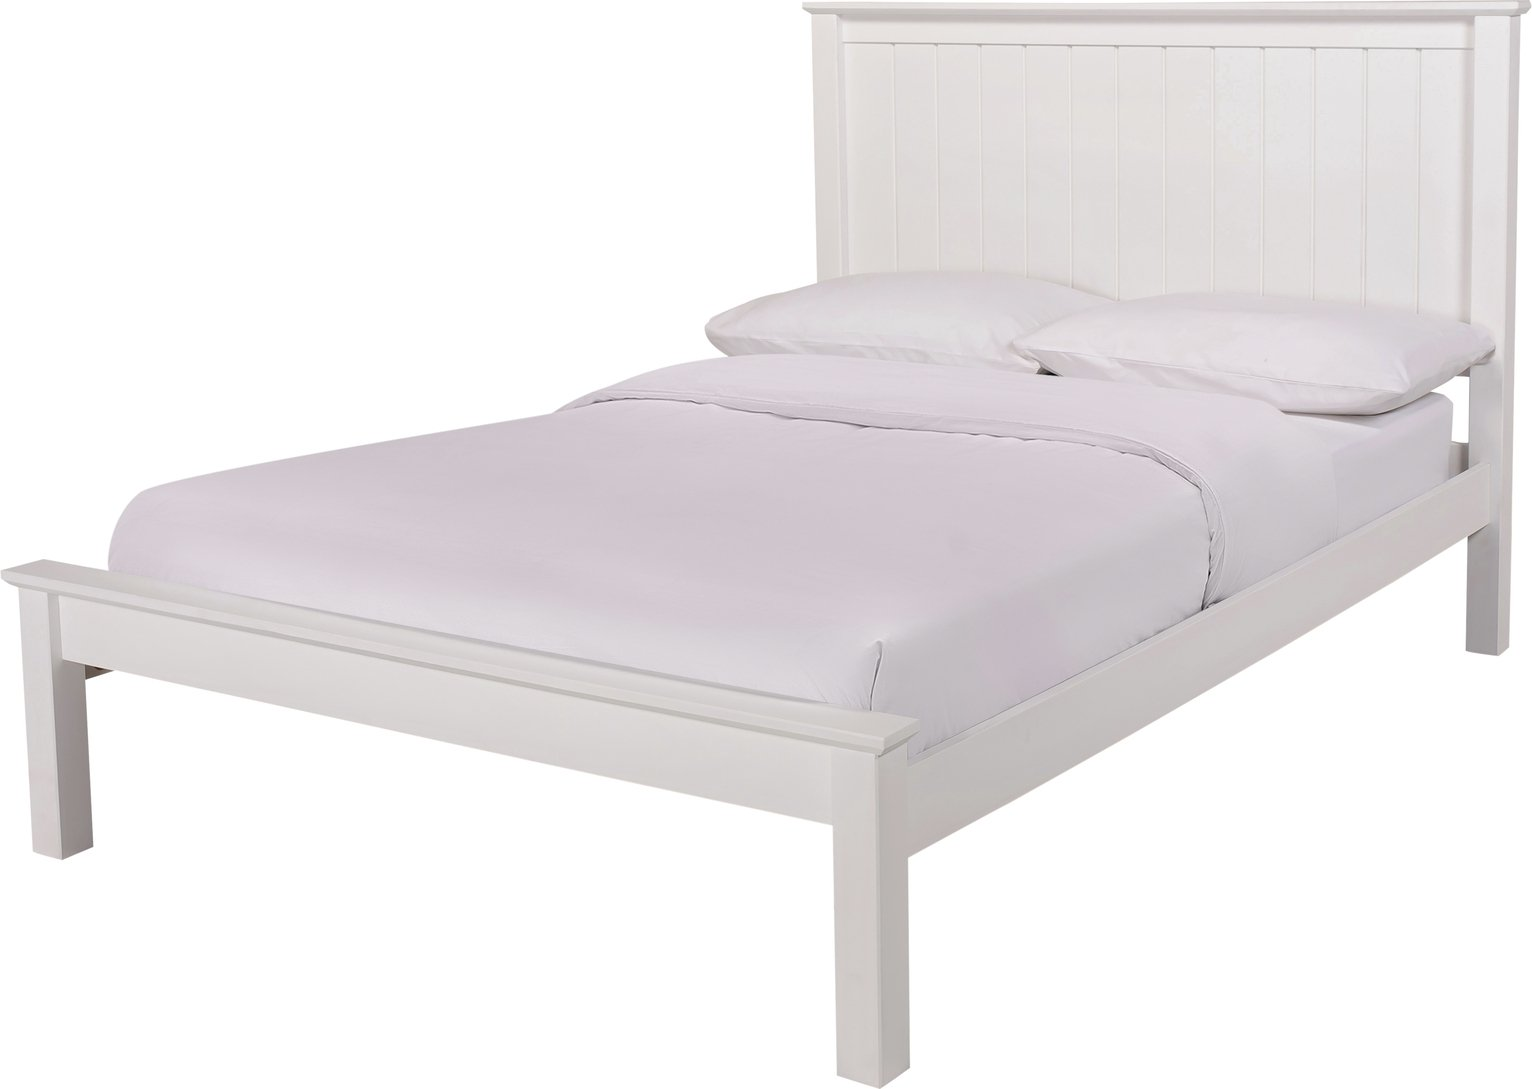 Argos Home Grafton Double Bed Frame - White